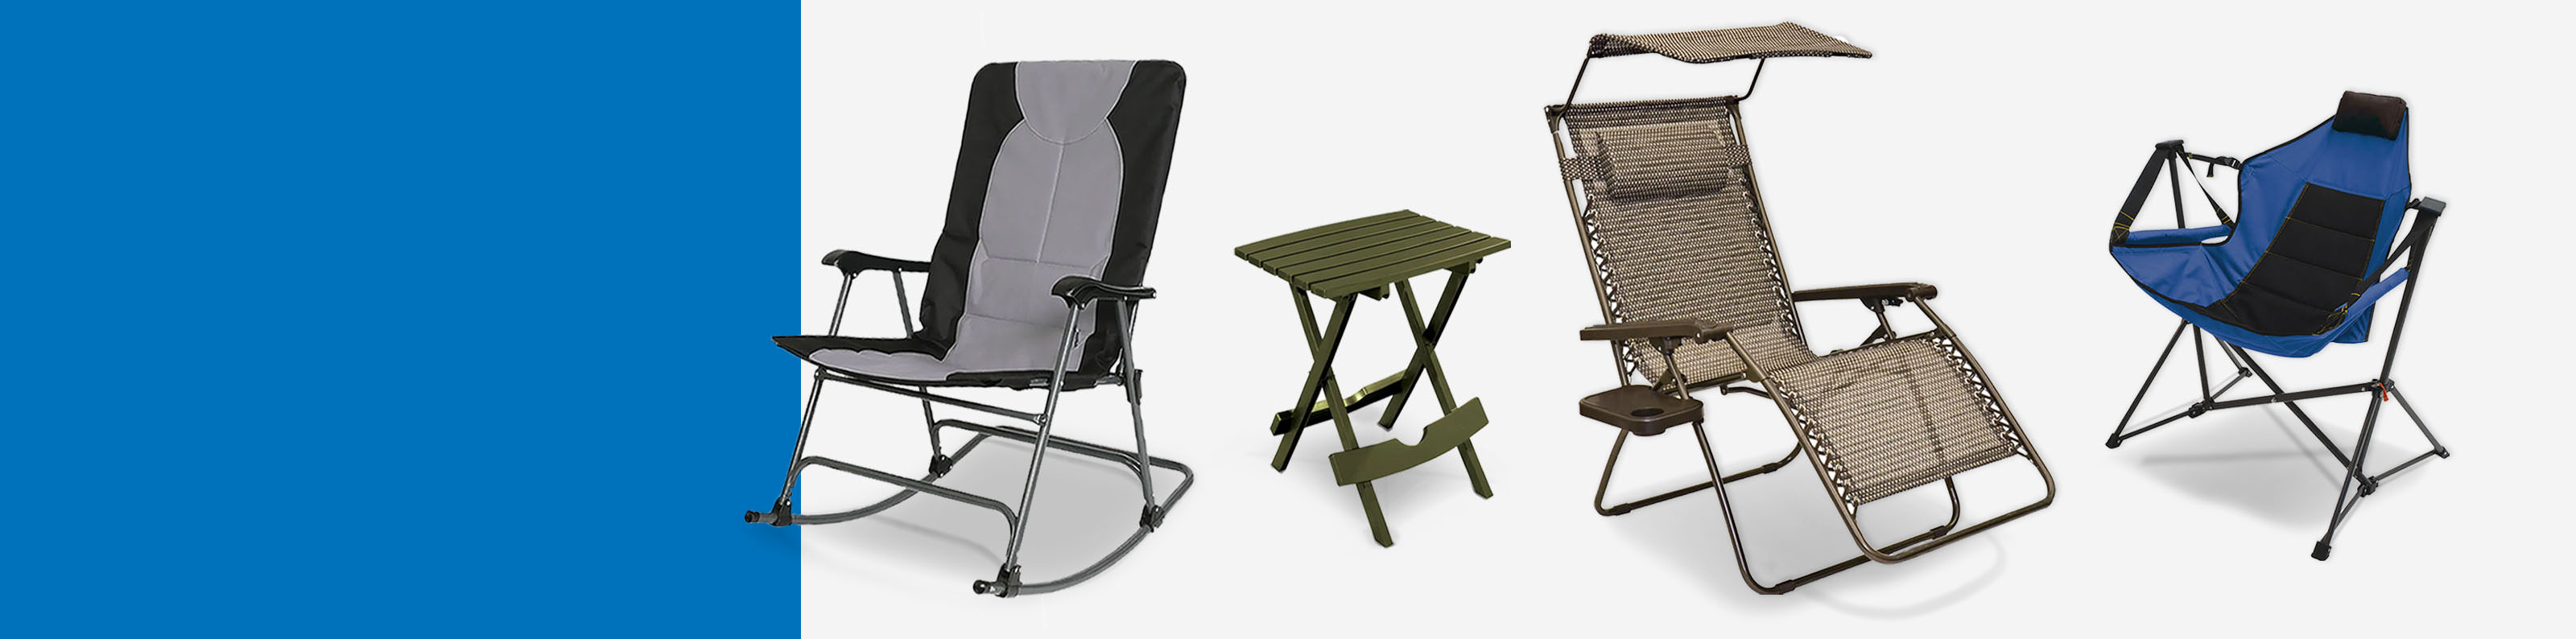 Sit Back & Relax! Up to 25% off Outdoor RV Furniture